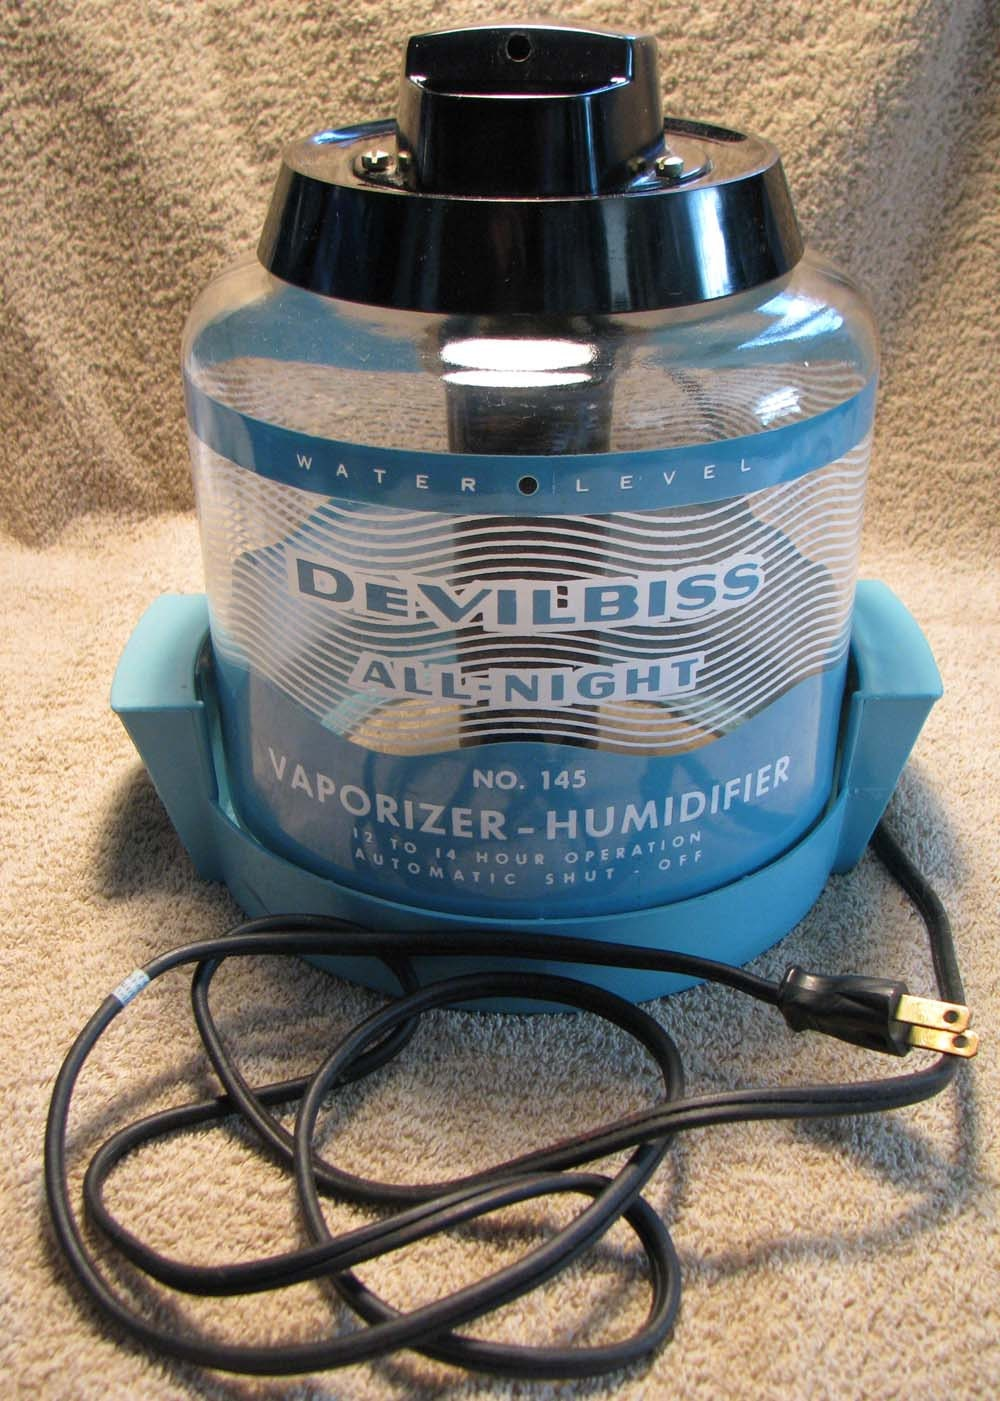 Working Vintage Devilbiss Vaporizer Humidifier Model 145 From